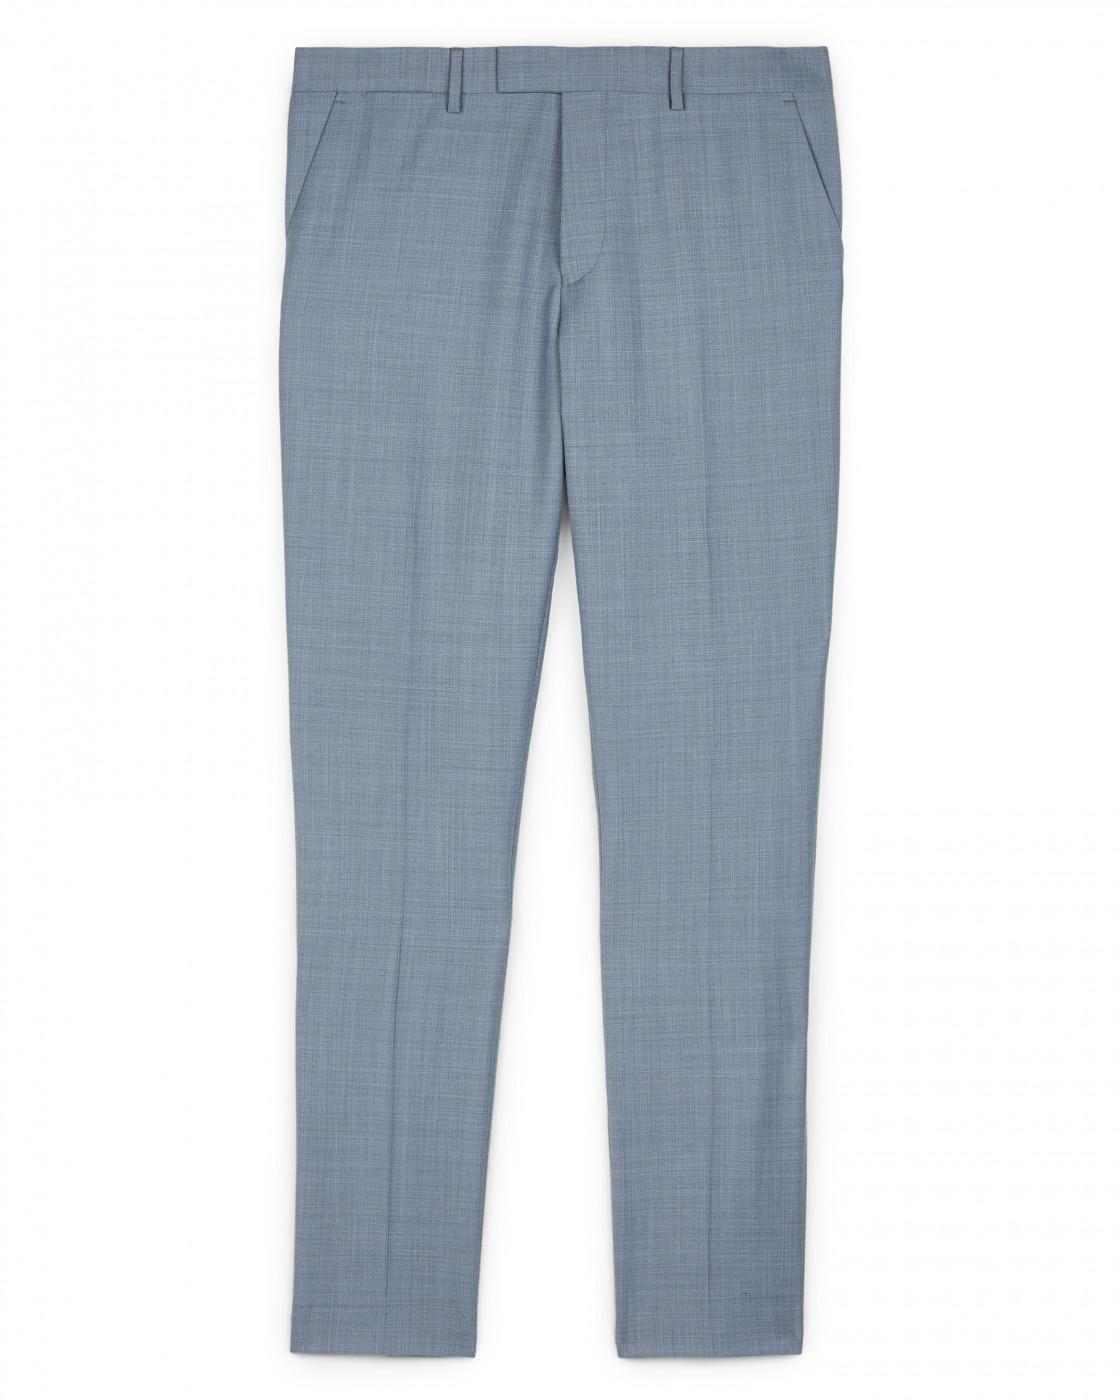 Skinny Melange Suit Trouser By Austin Reed Thread